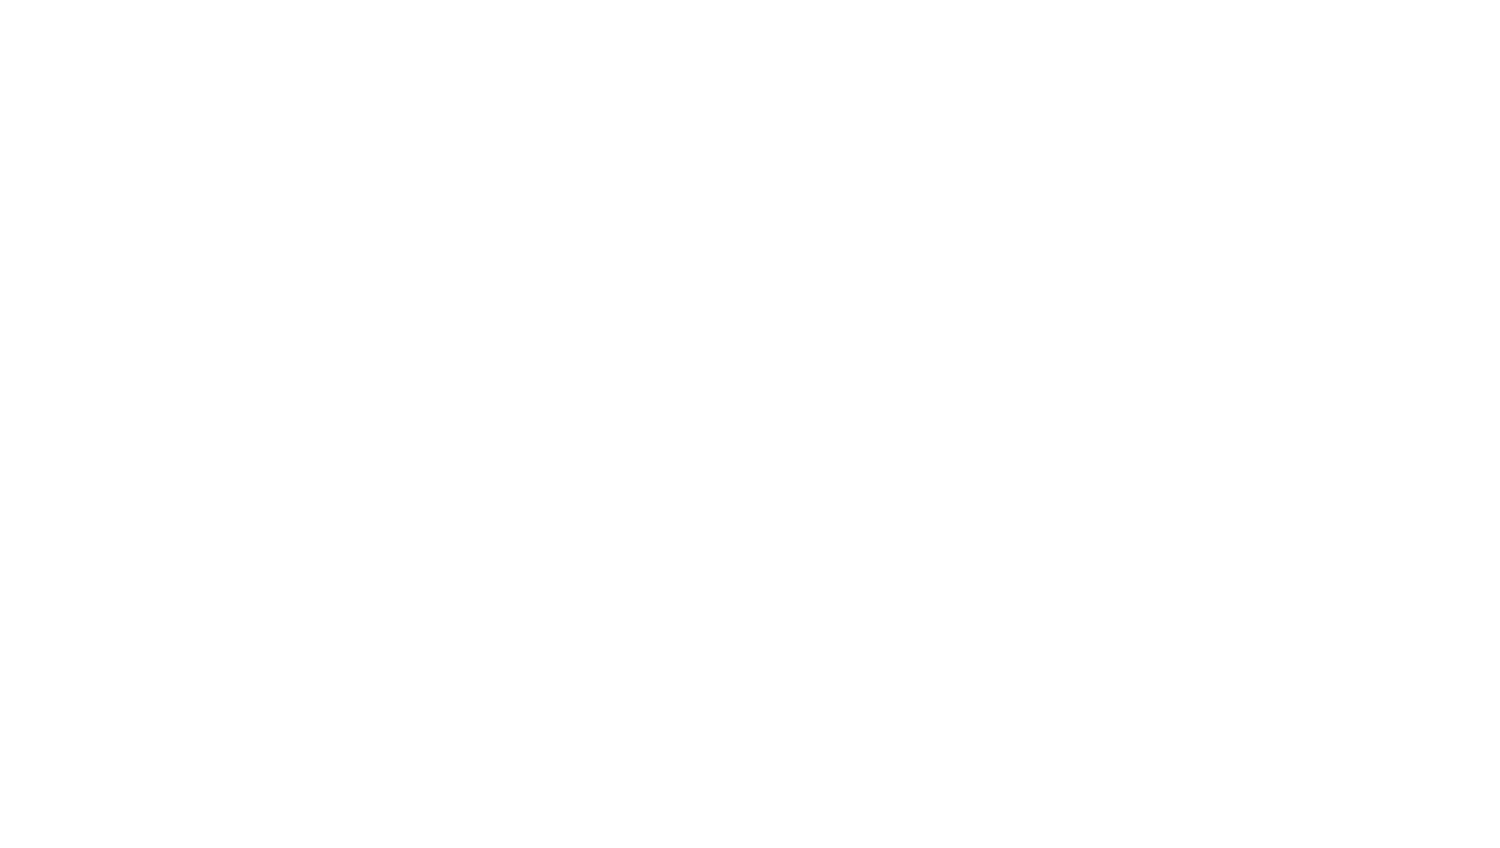 Minnovation Collective - NEW